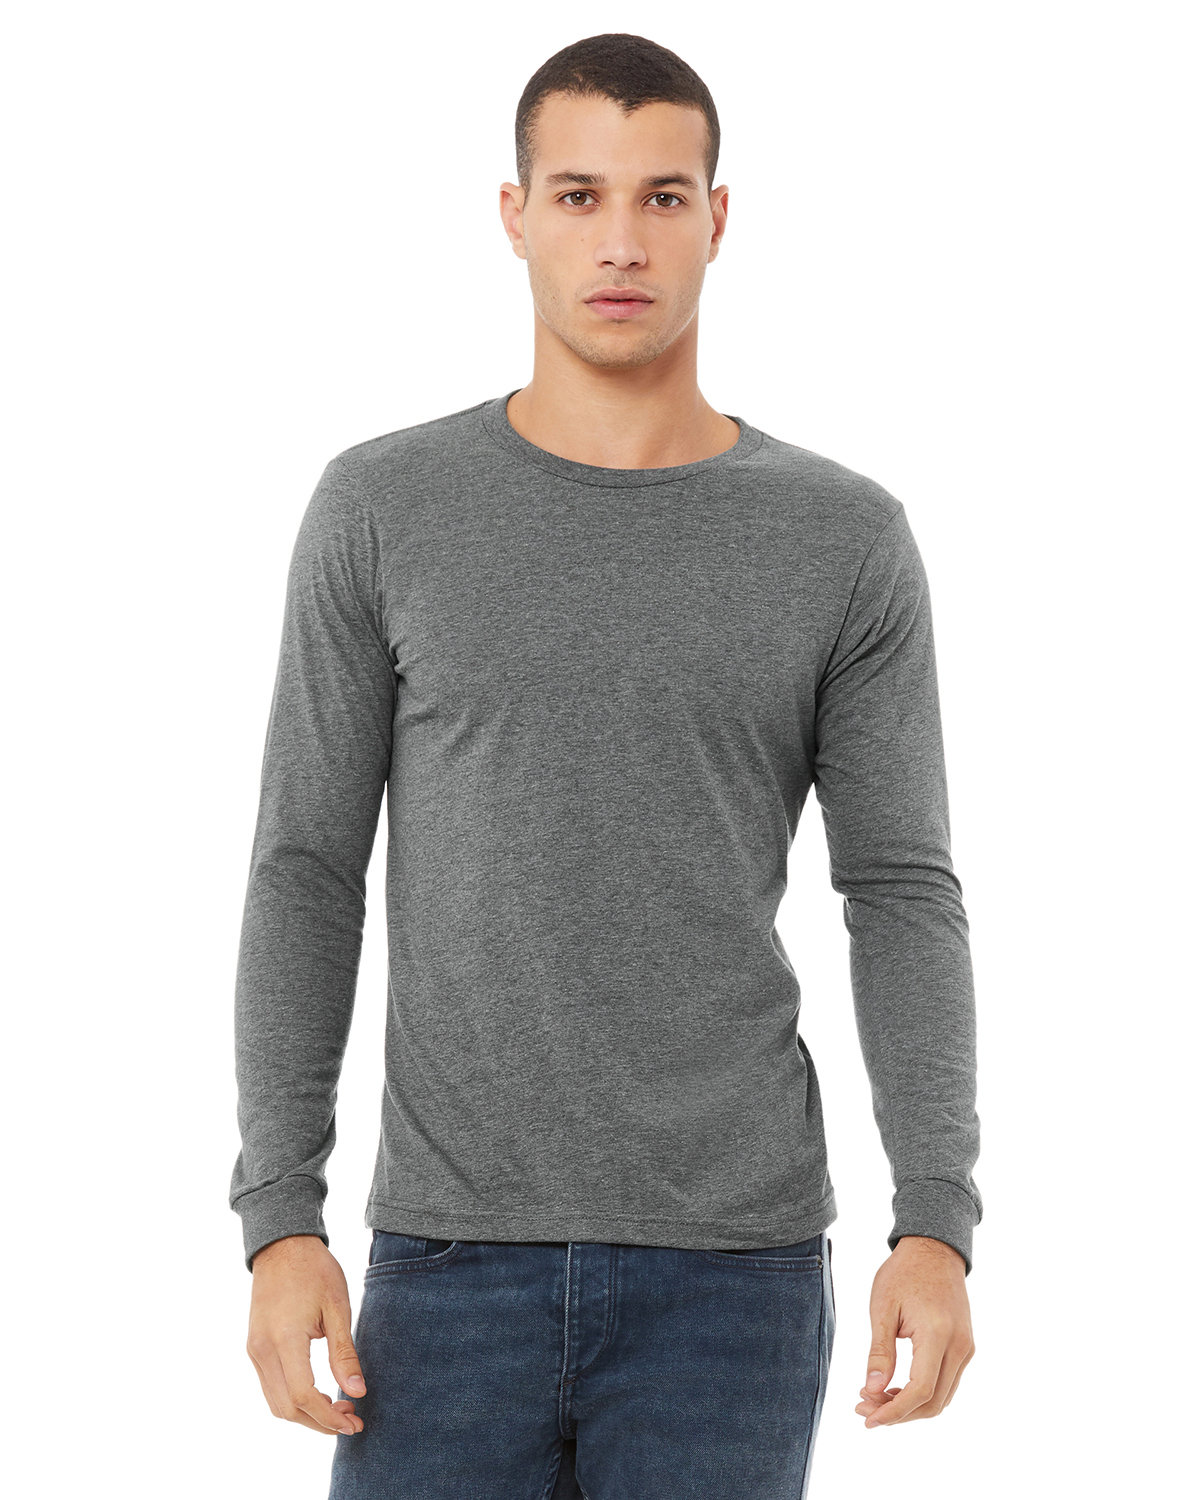 coupon code popular stores professional sale Buy grey long sleeve shirt - 54% OFF! Share discount